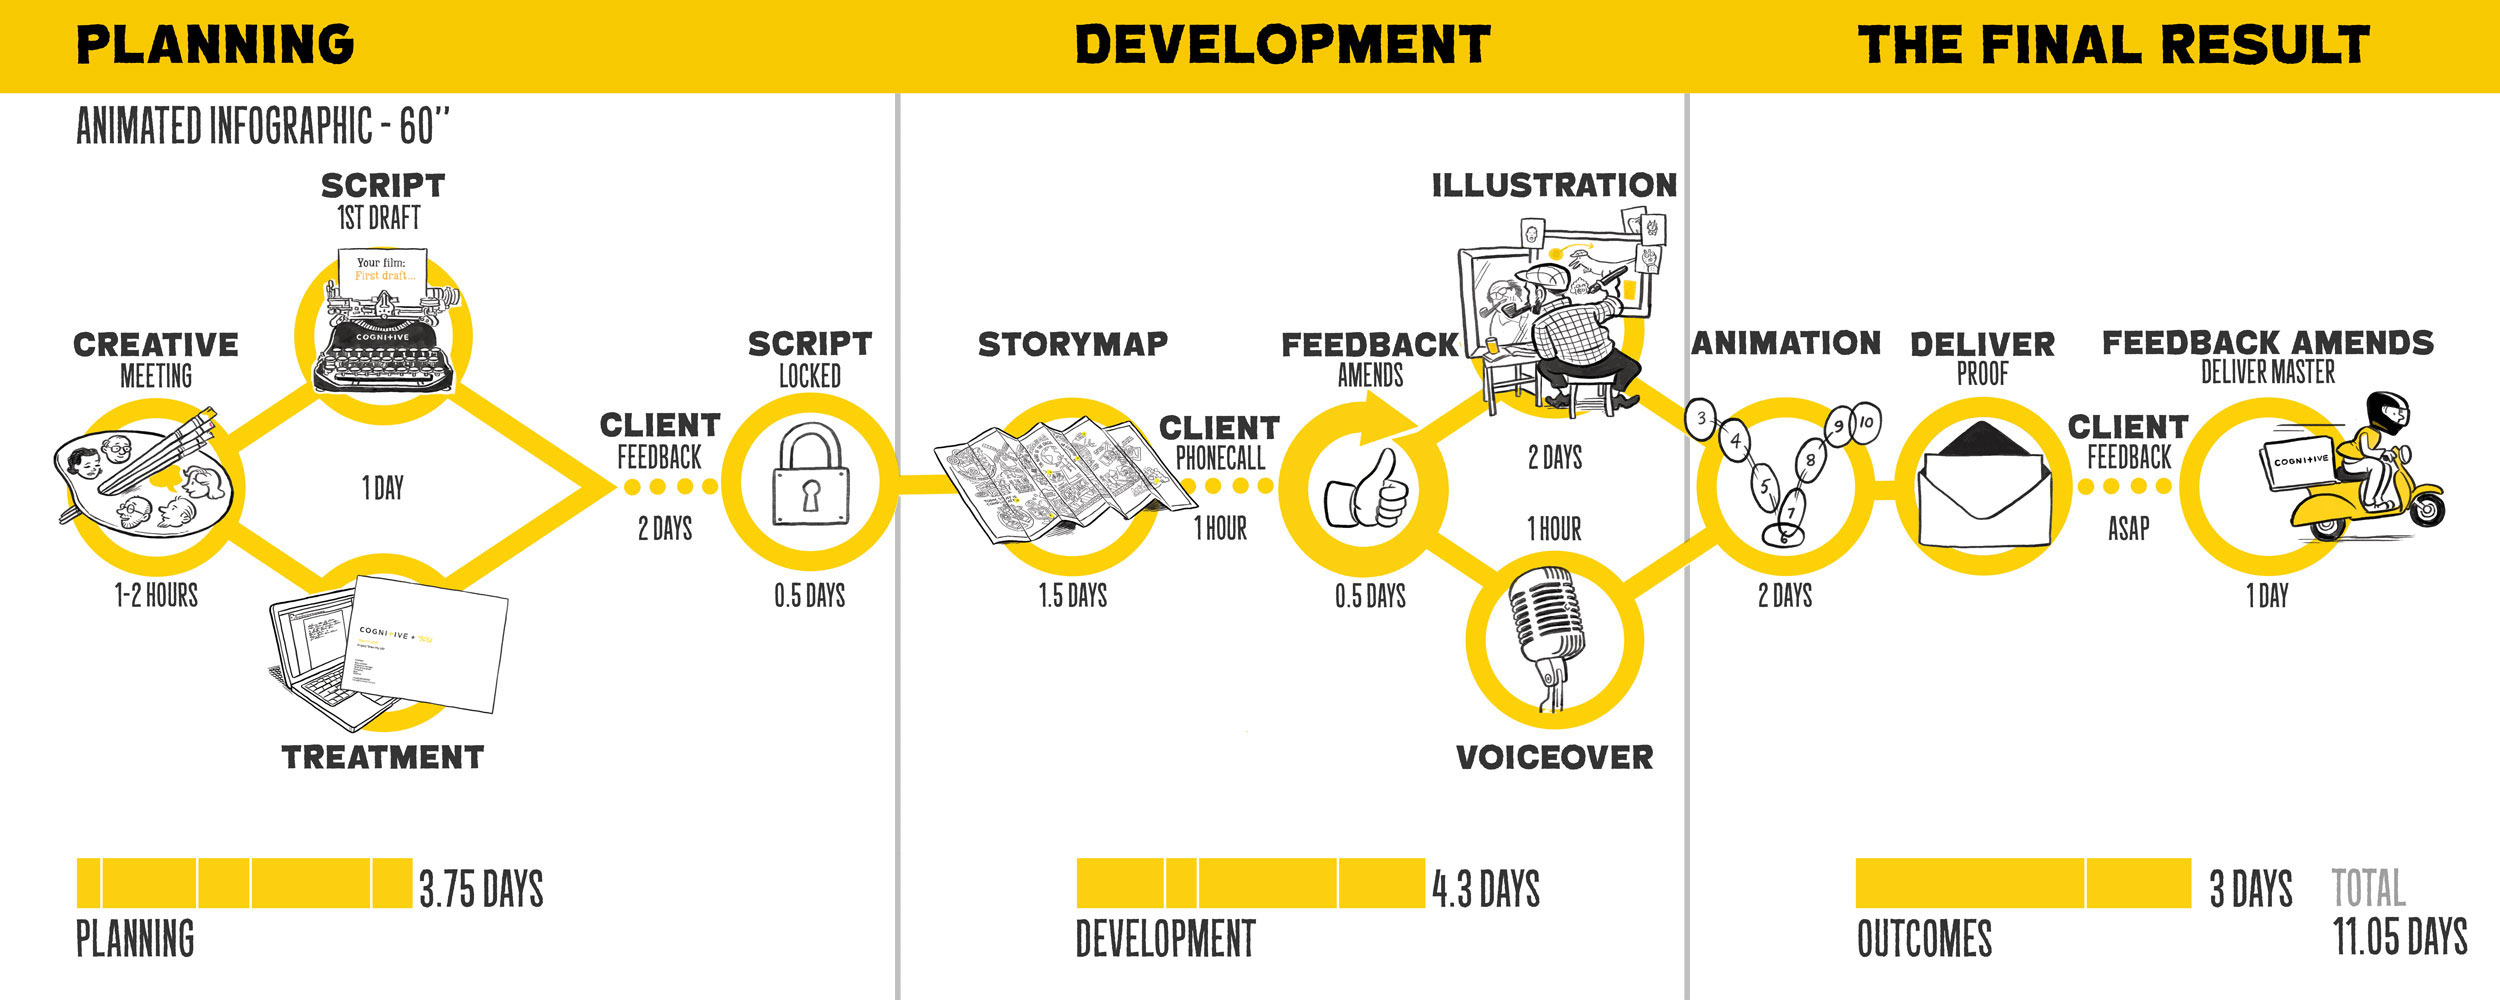 Animated Infographic Timescales